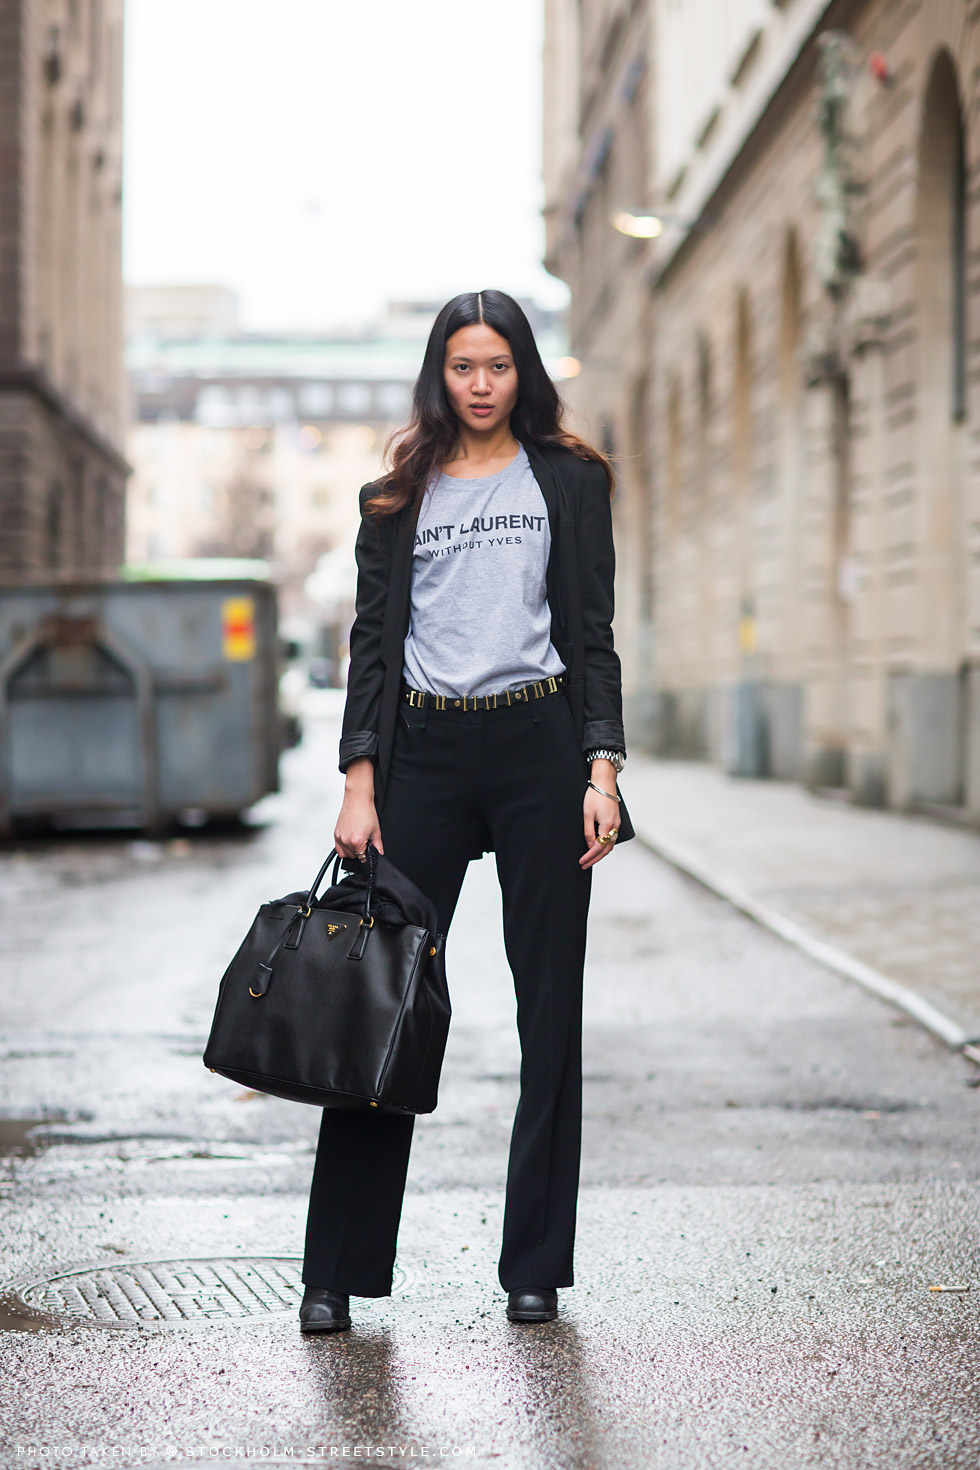 http://carolinesmode.com/stockholmstreetstyle/?p=1